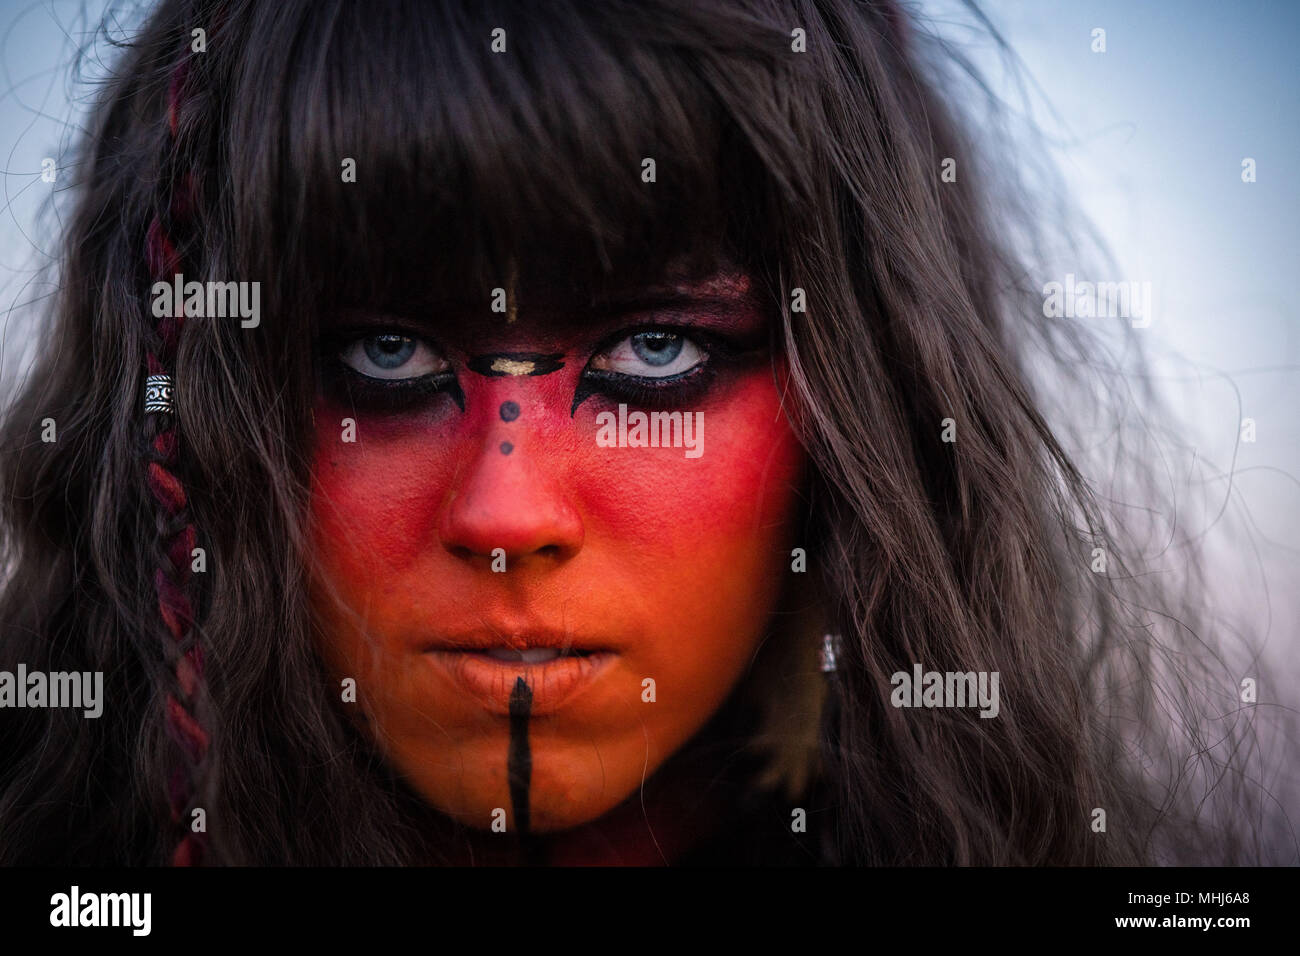 Edinburgh   April 30 2018;  Beltane Fire Festival takes place on Calton Hill to ushers in summer with a display of fire, theatre, drumming, body paint - Stock Image